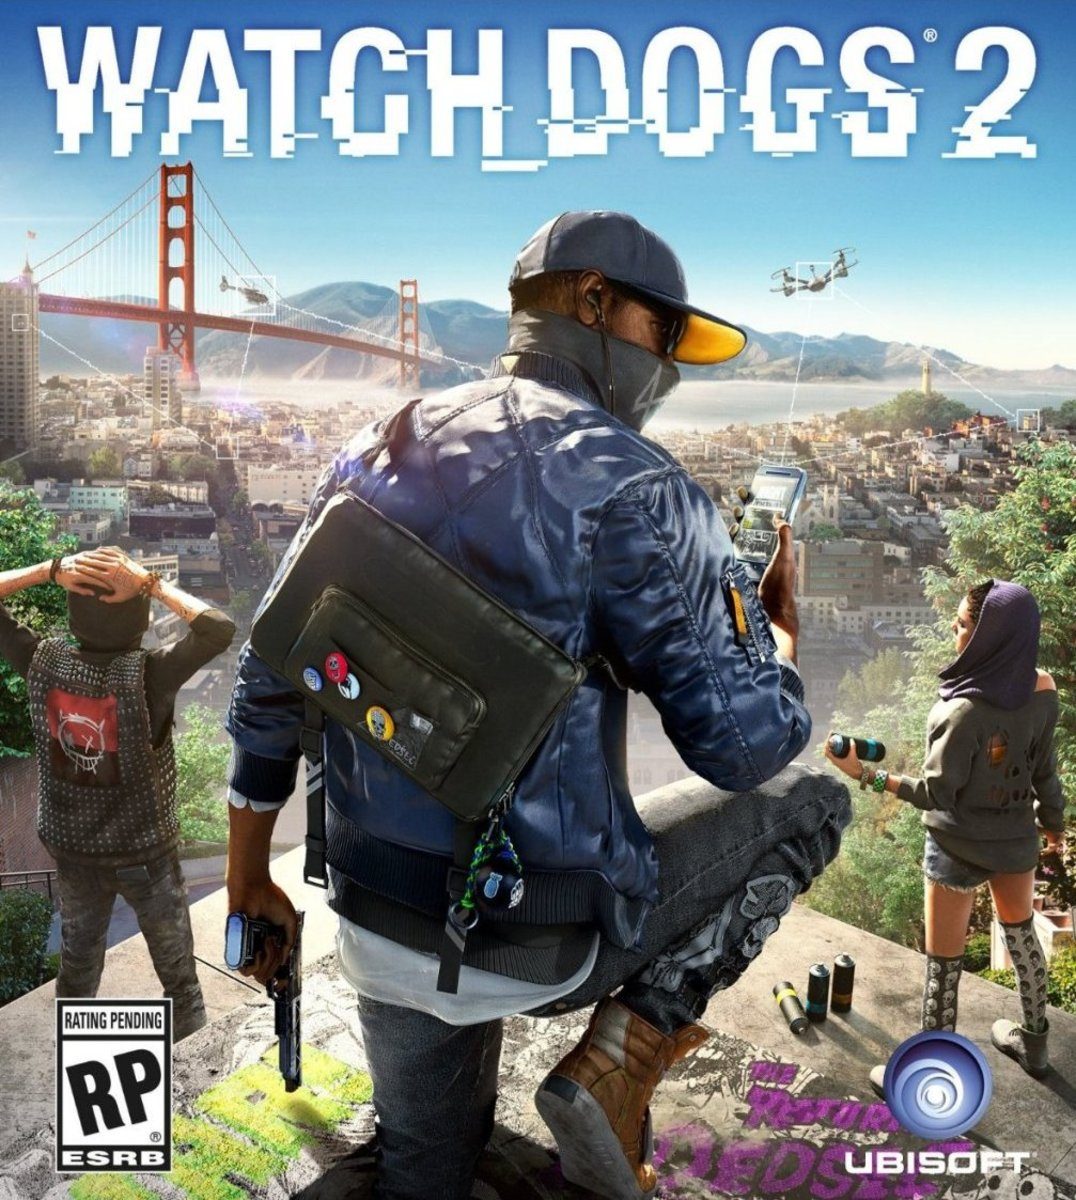 Watch Dogs 2: Is it Worth Playing?